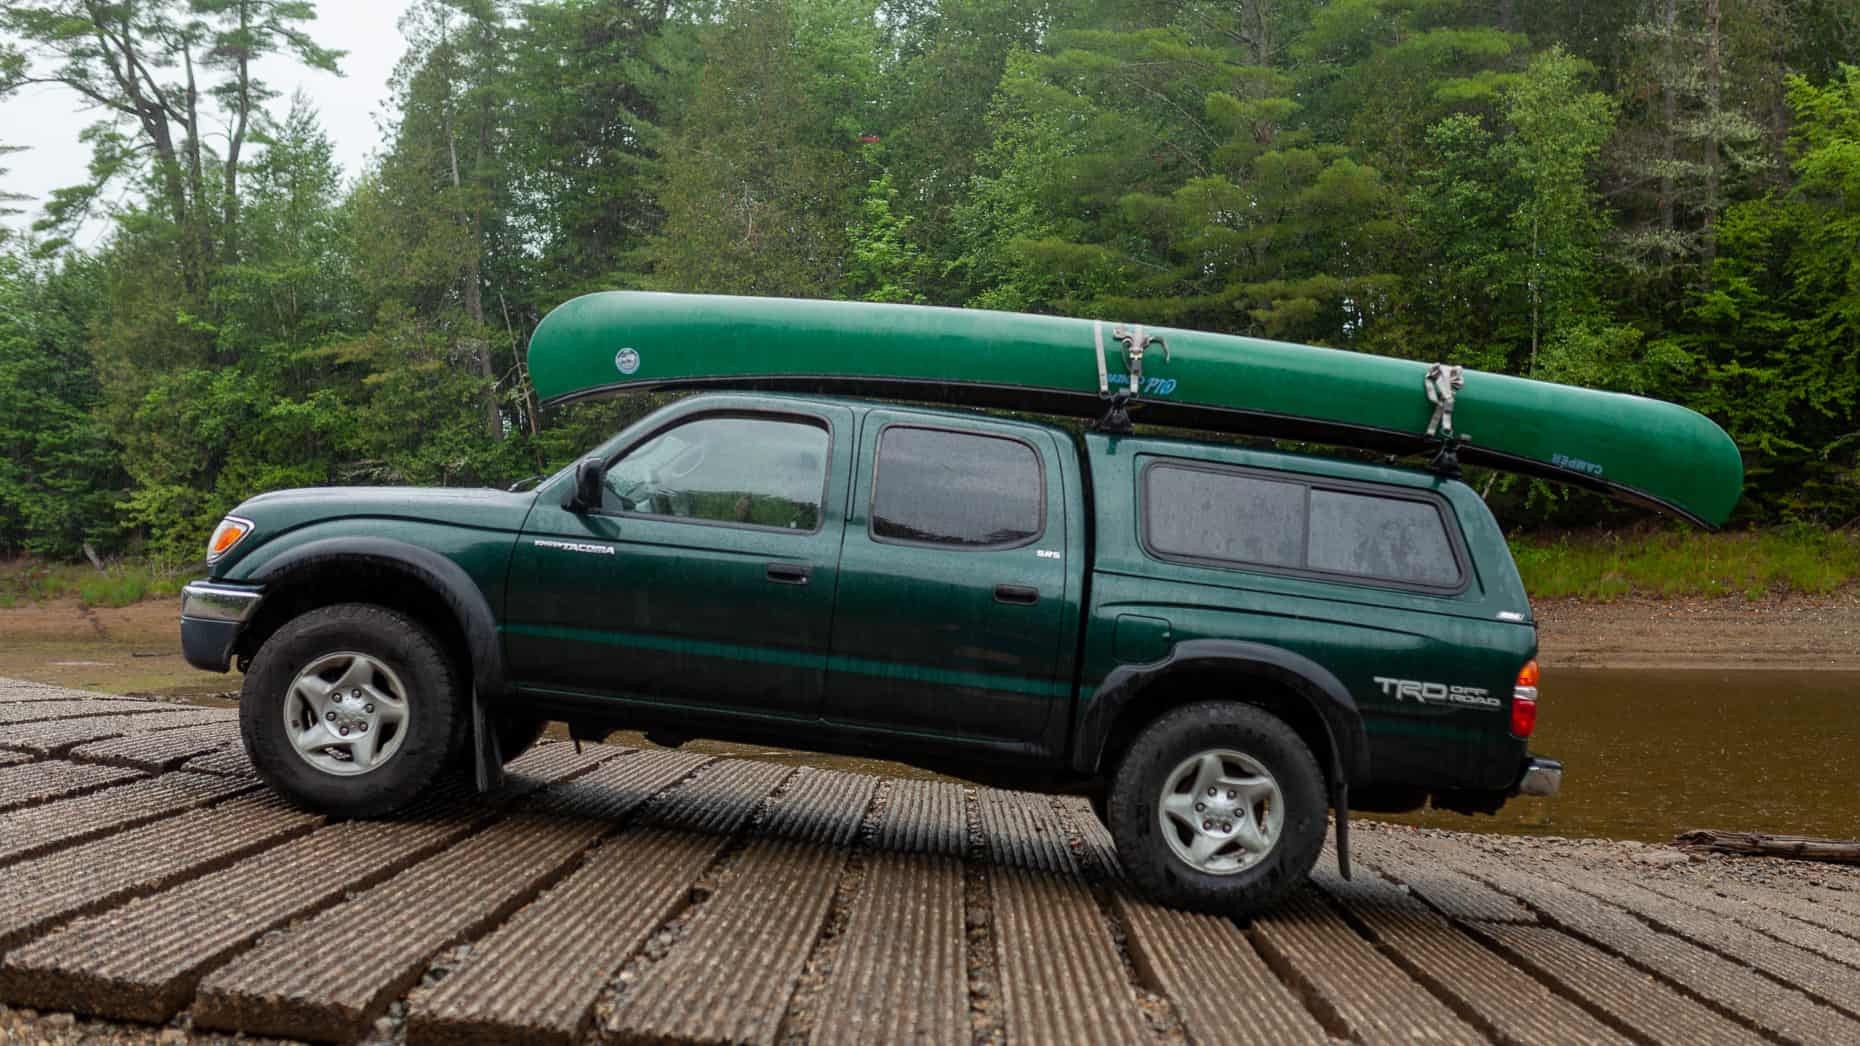 Green Toyota Tacoma on a boat launch with canoe on roof rack.